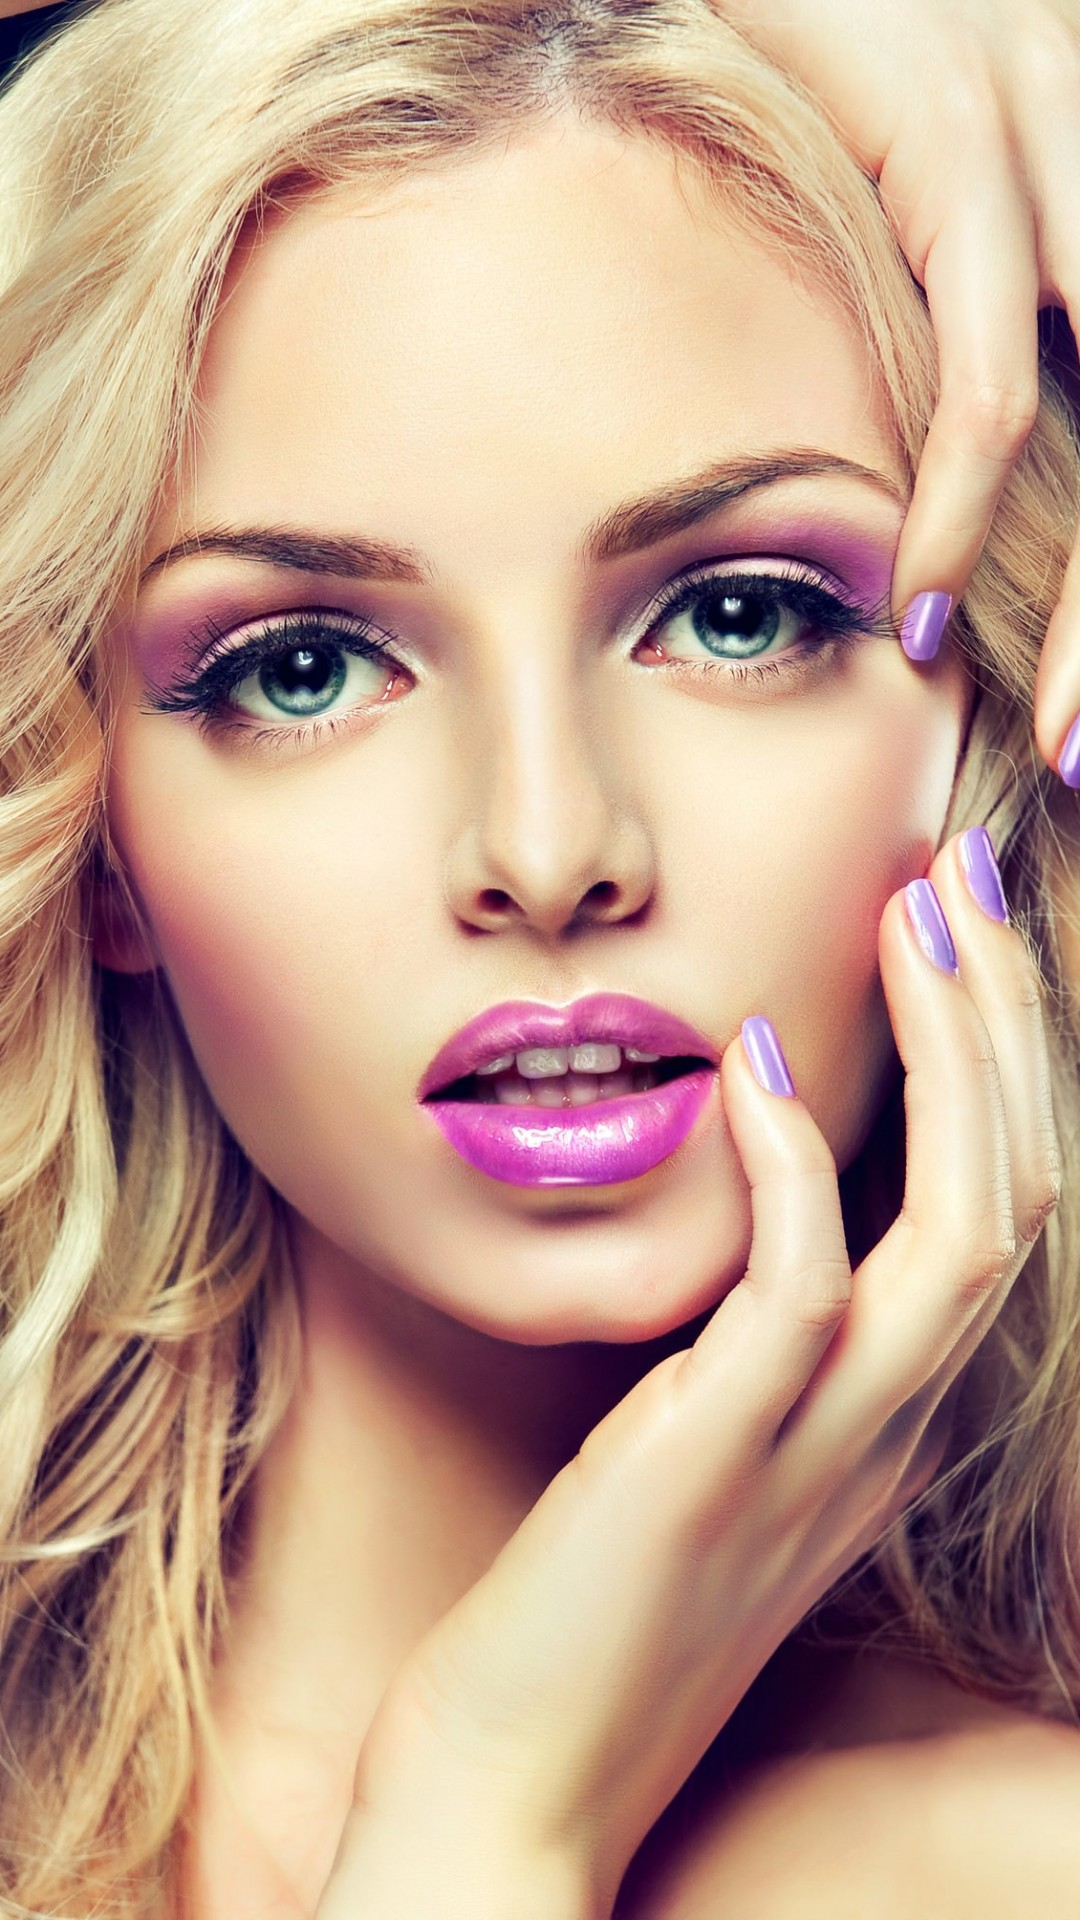 Beautiful Blonde Girl With Lilac Makeup Wallpaper for Google Nexus 5